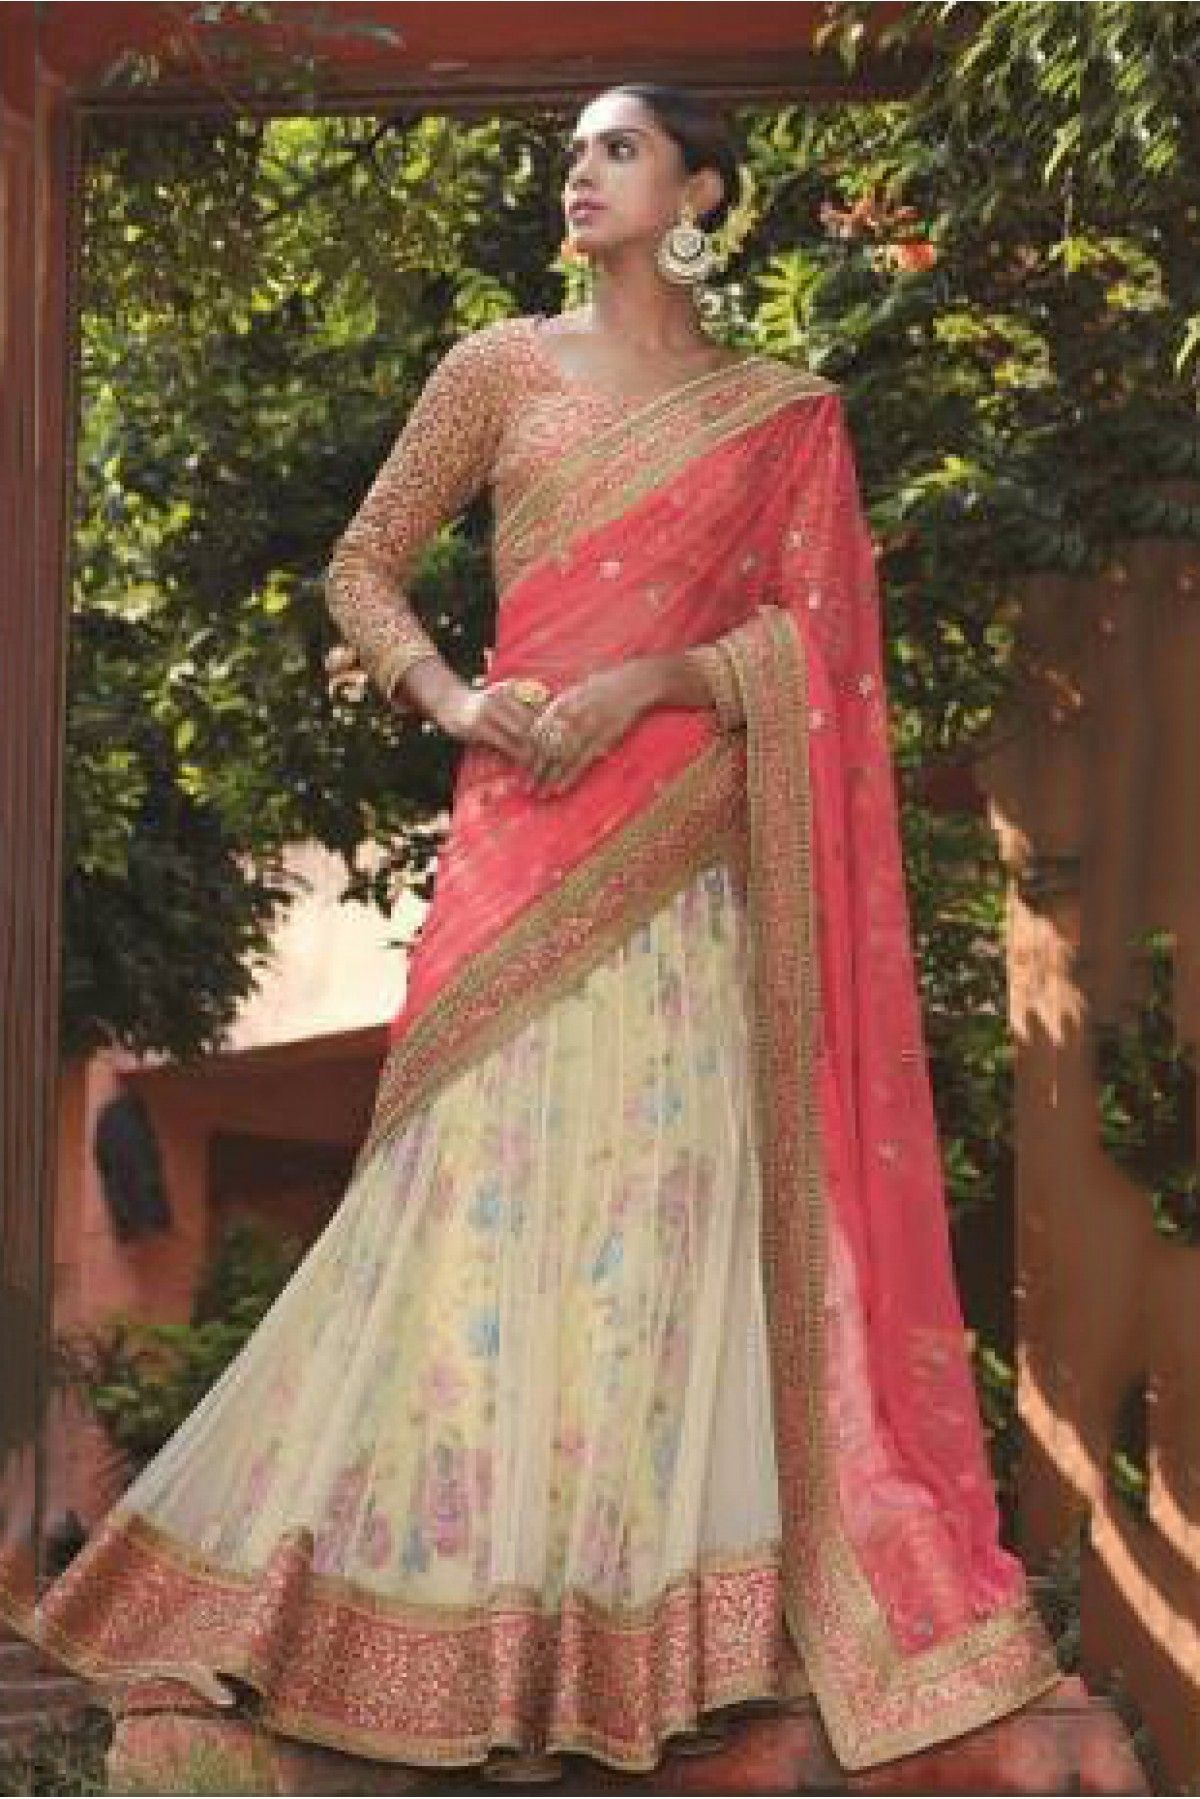 074e499f3f Peach and Cream Colour Georgette and Net Fabric Designer A Line Lehenga  Choli Comes With Matching